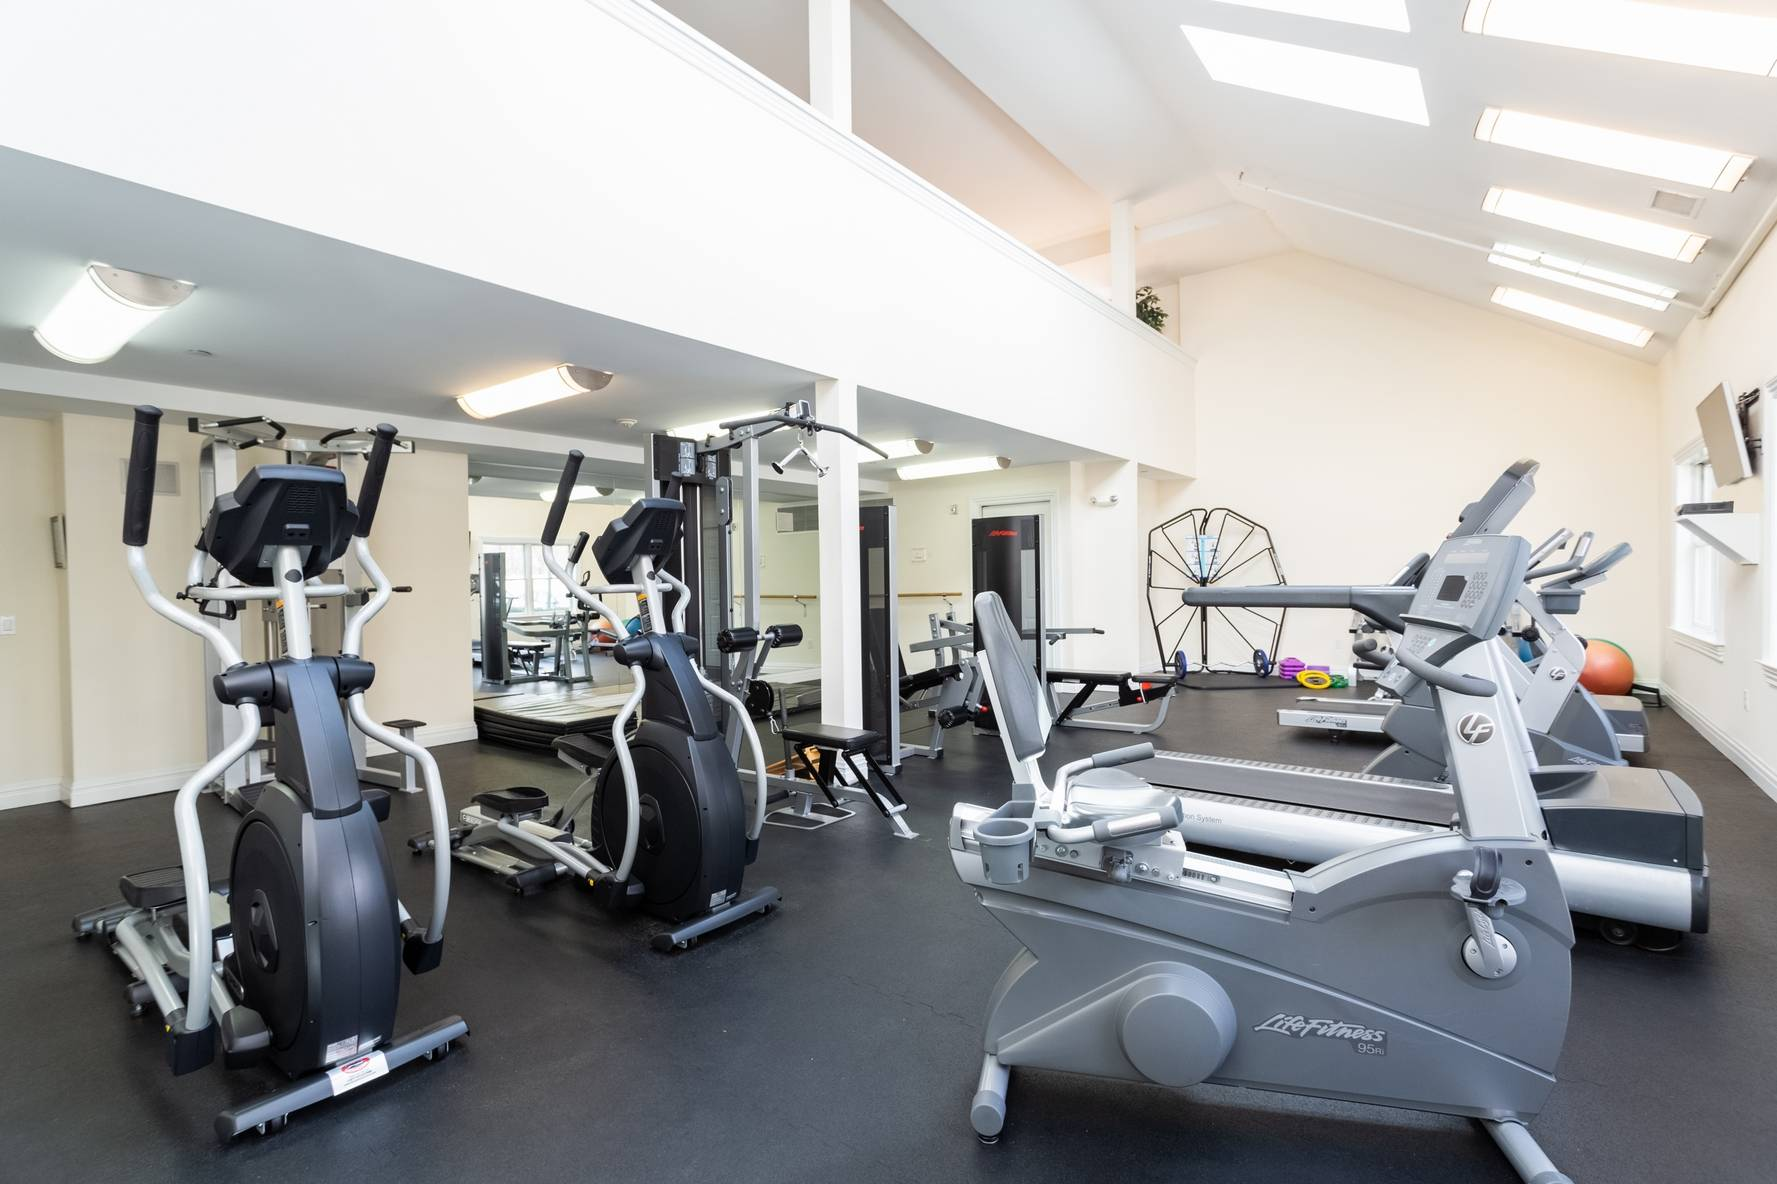 State of the art fitness center with cardio and strength training equipment